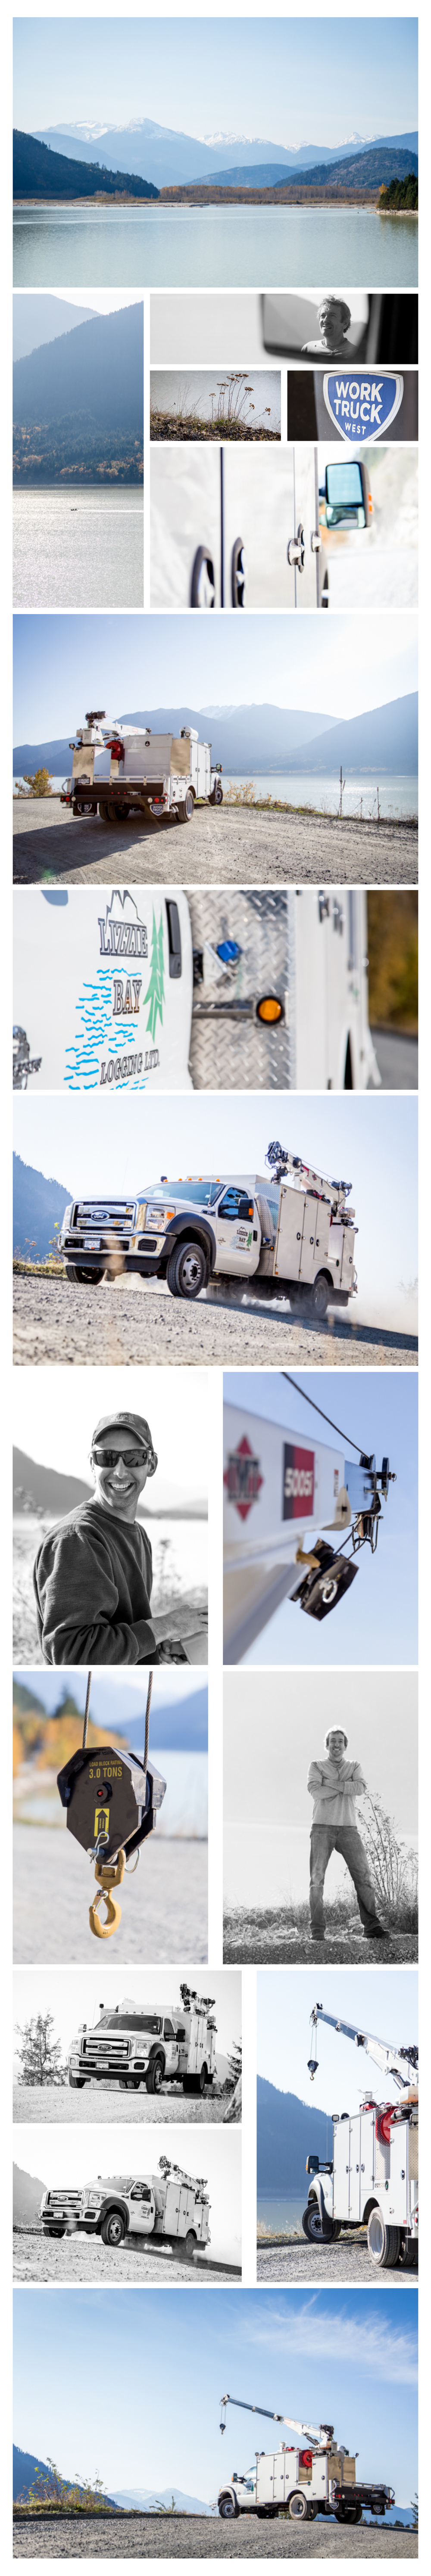 Little photo narrative of our day down the lake road.